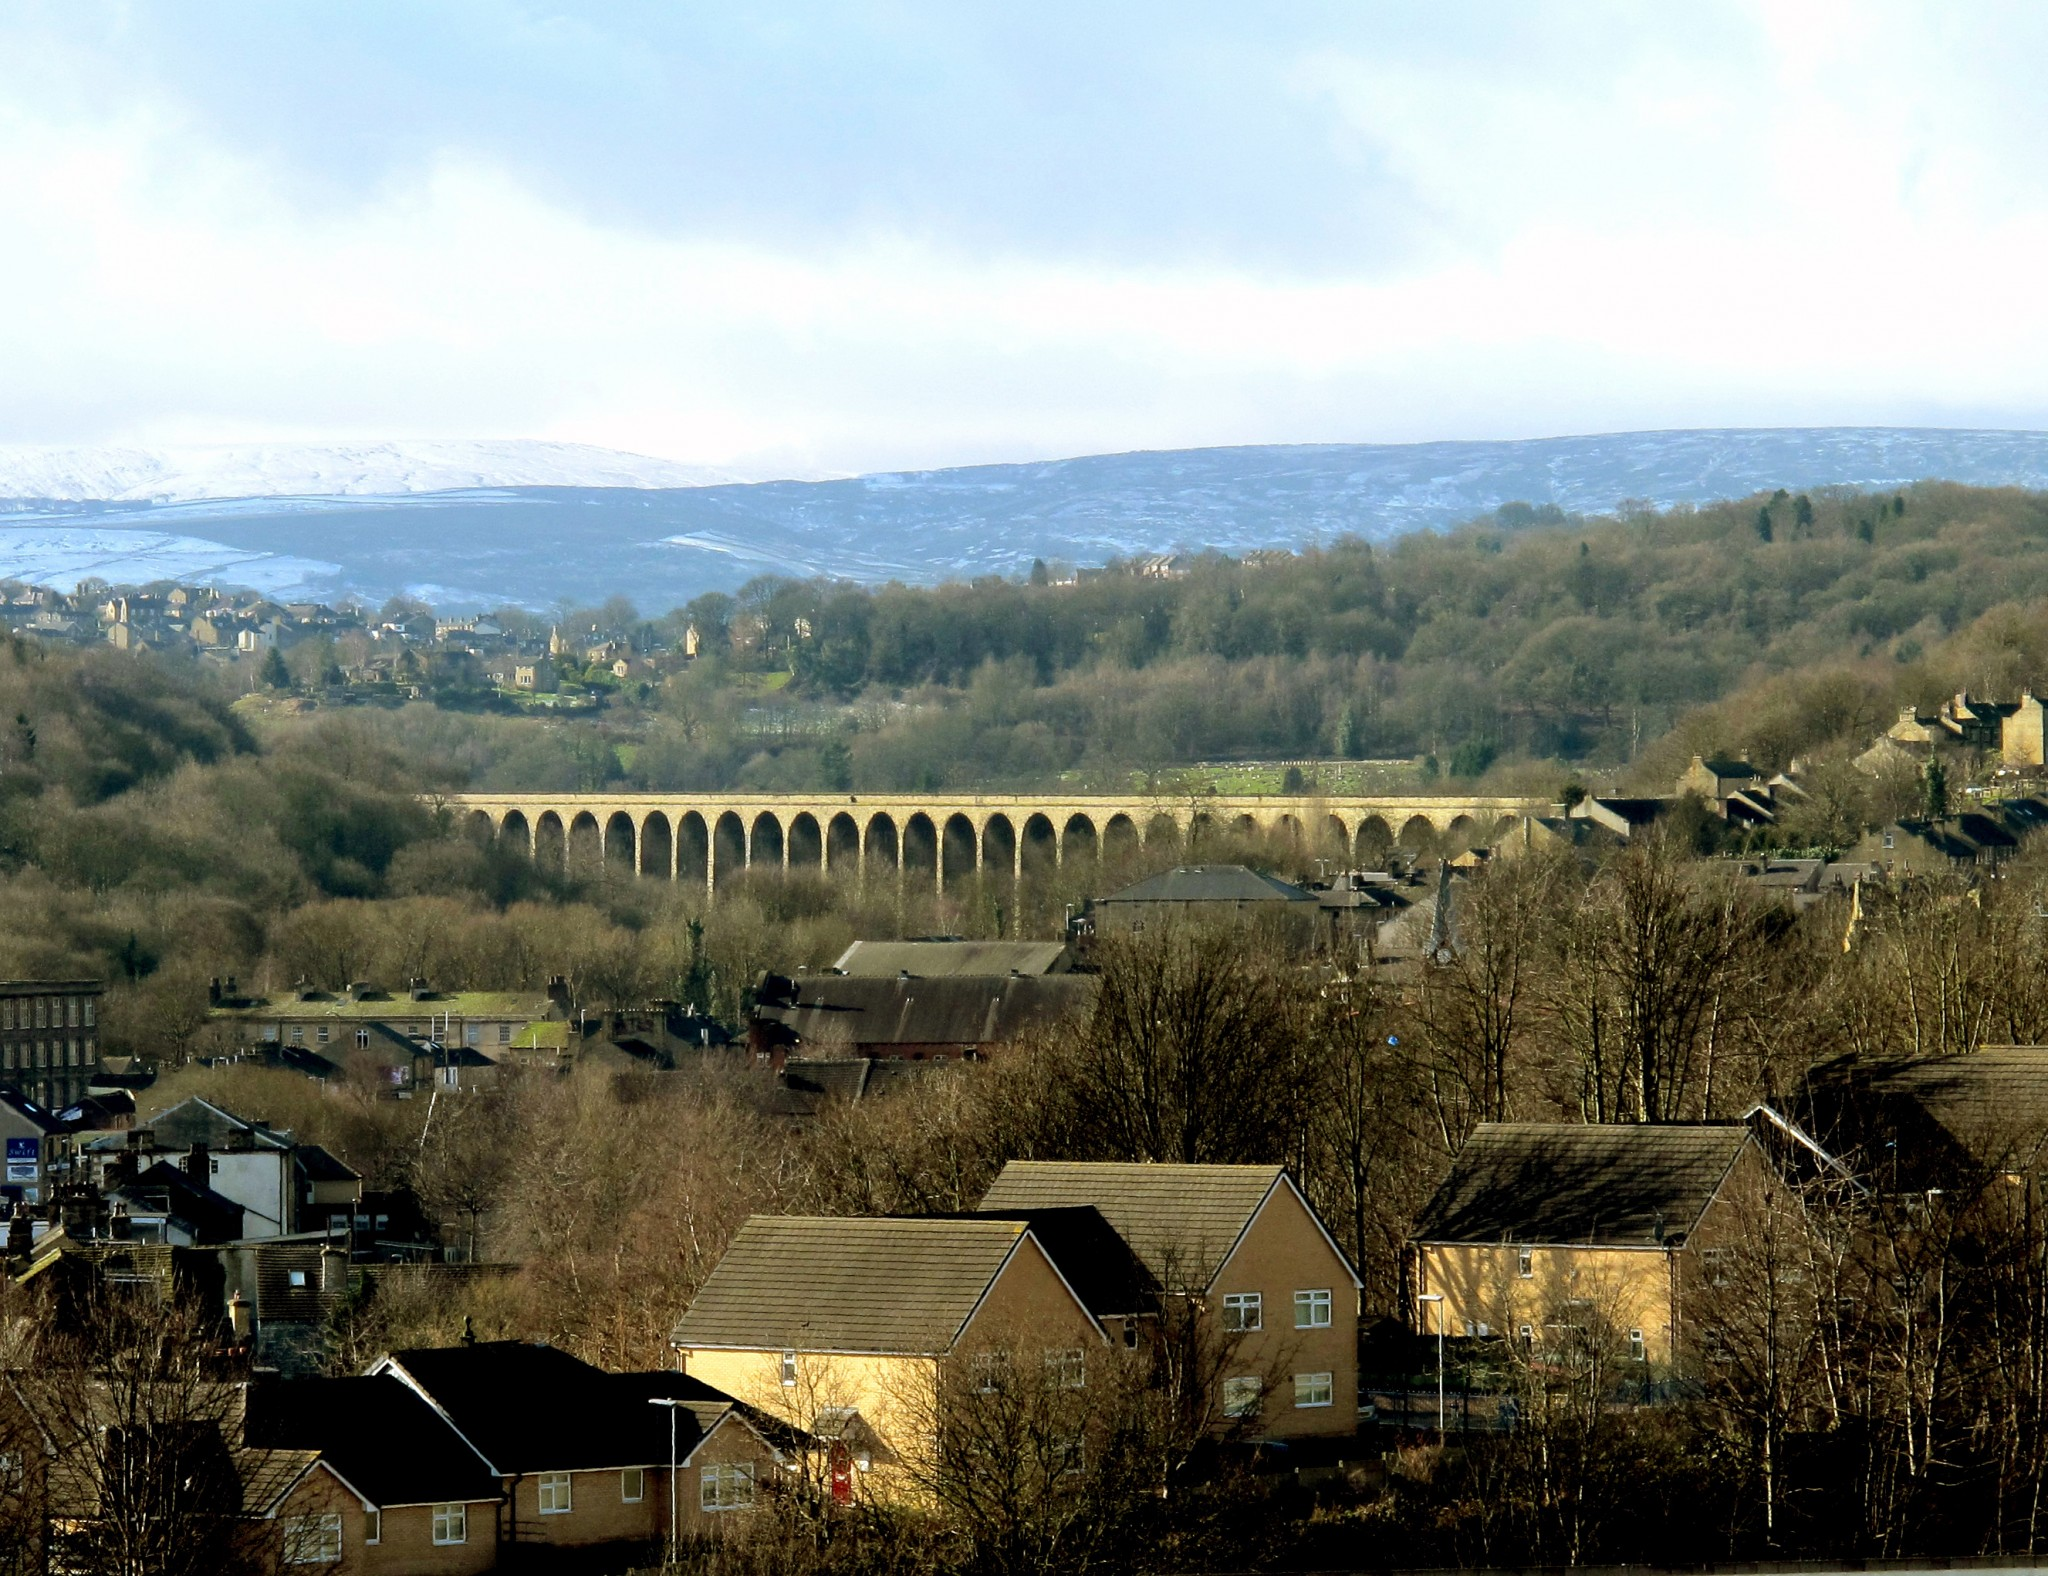 Lockwood Viaduct